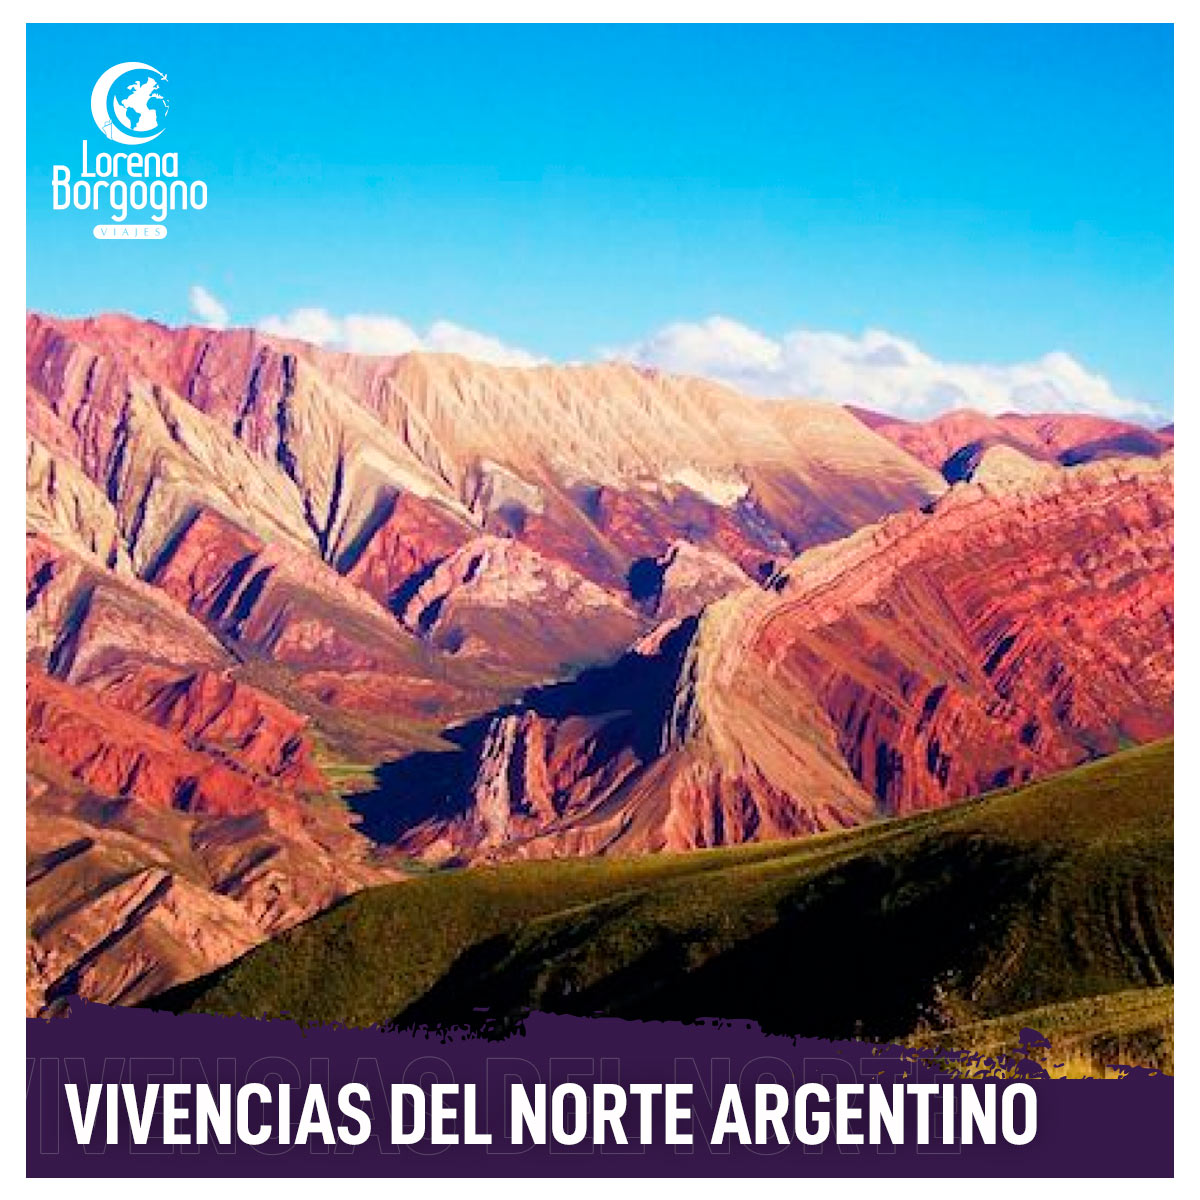 VIVENCIAS DEL NORTE ARGENTINO (IT)